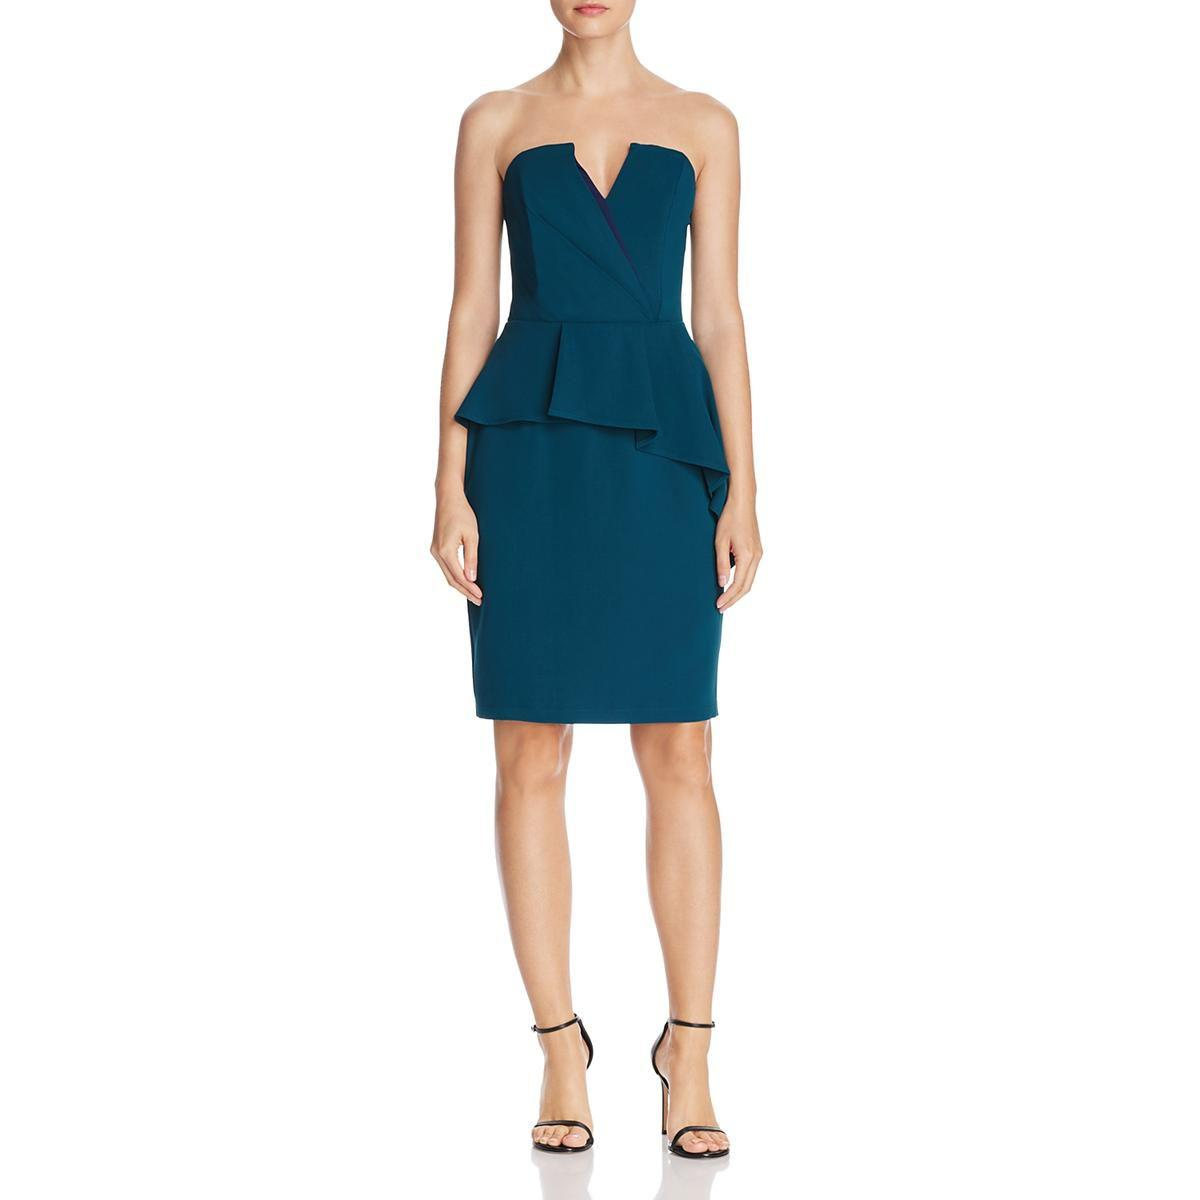 Lyst - Adelyn Rae Womens Strapless Special Occasion Party Dress in Blue e319e4d41